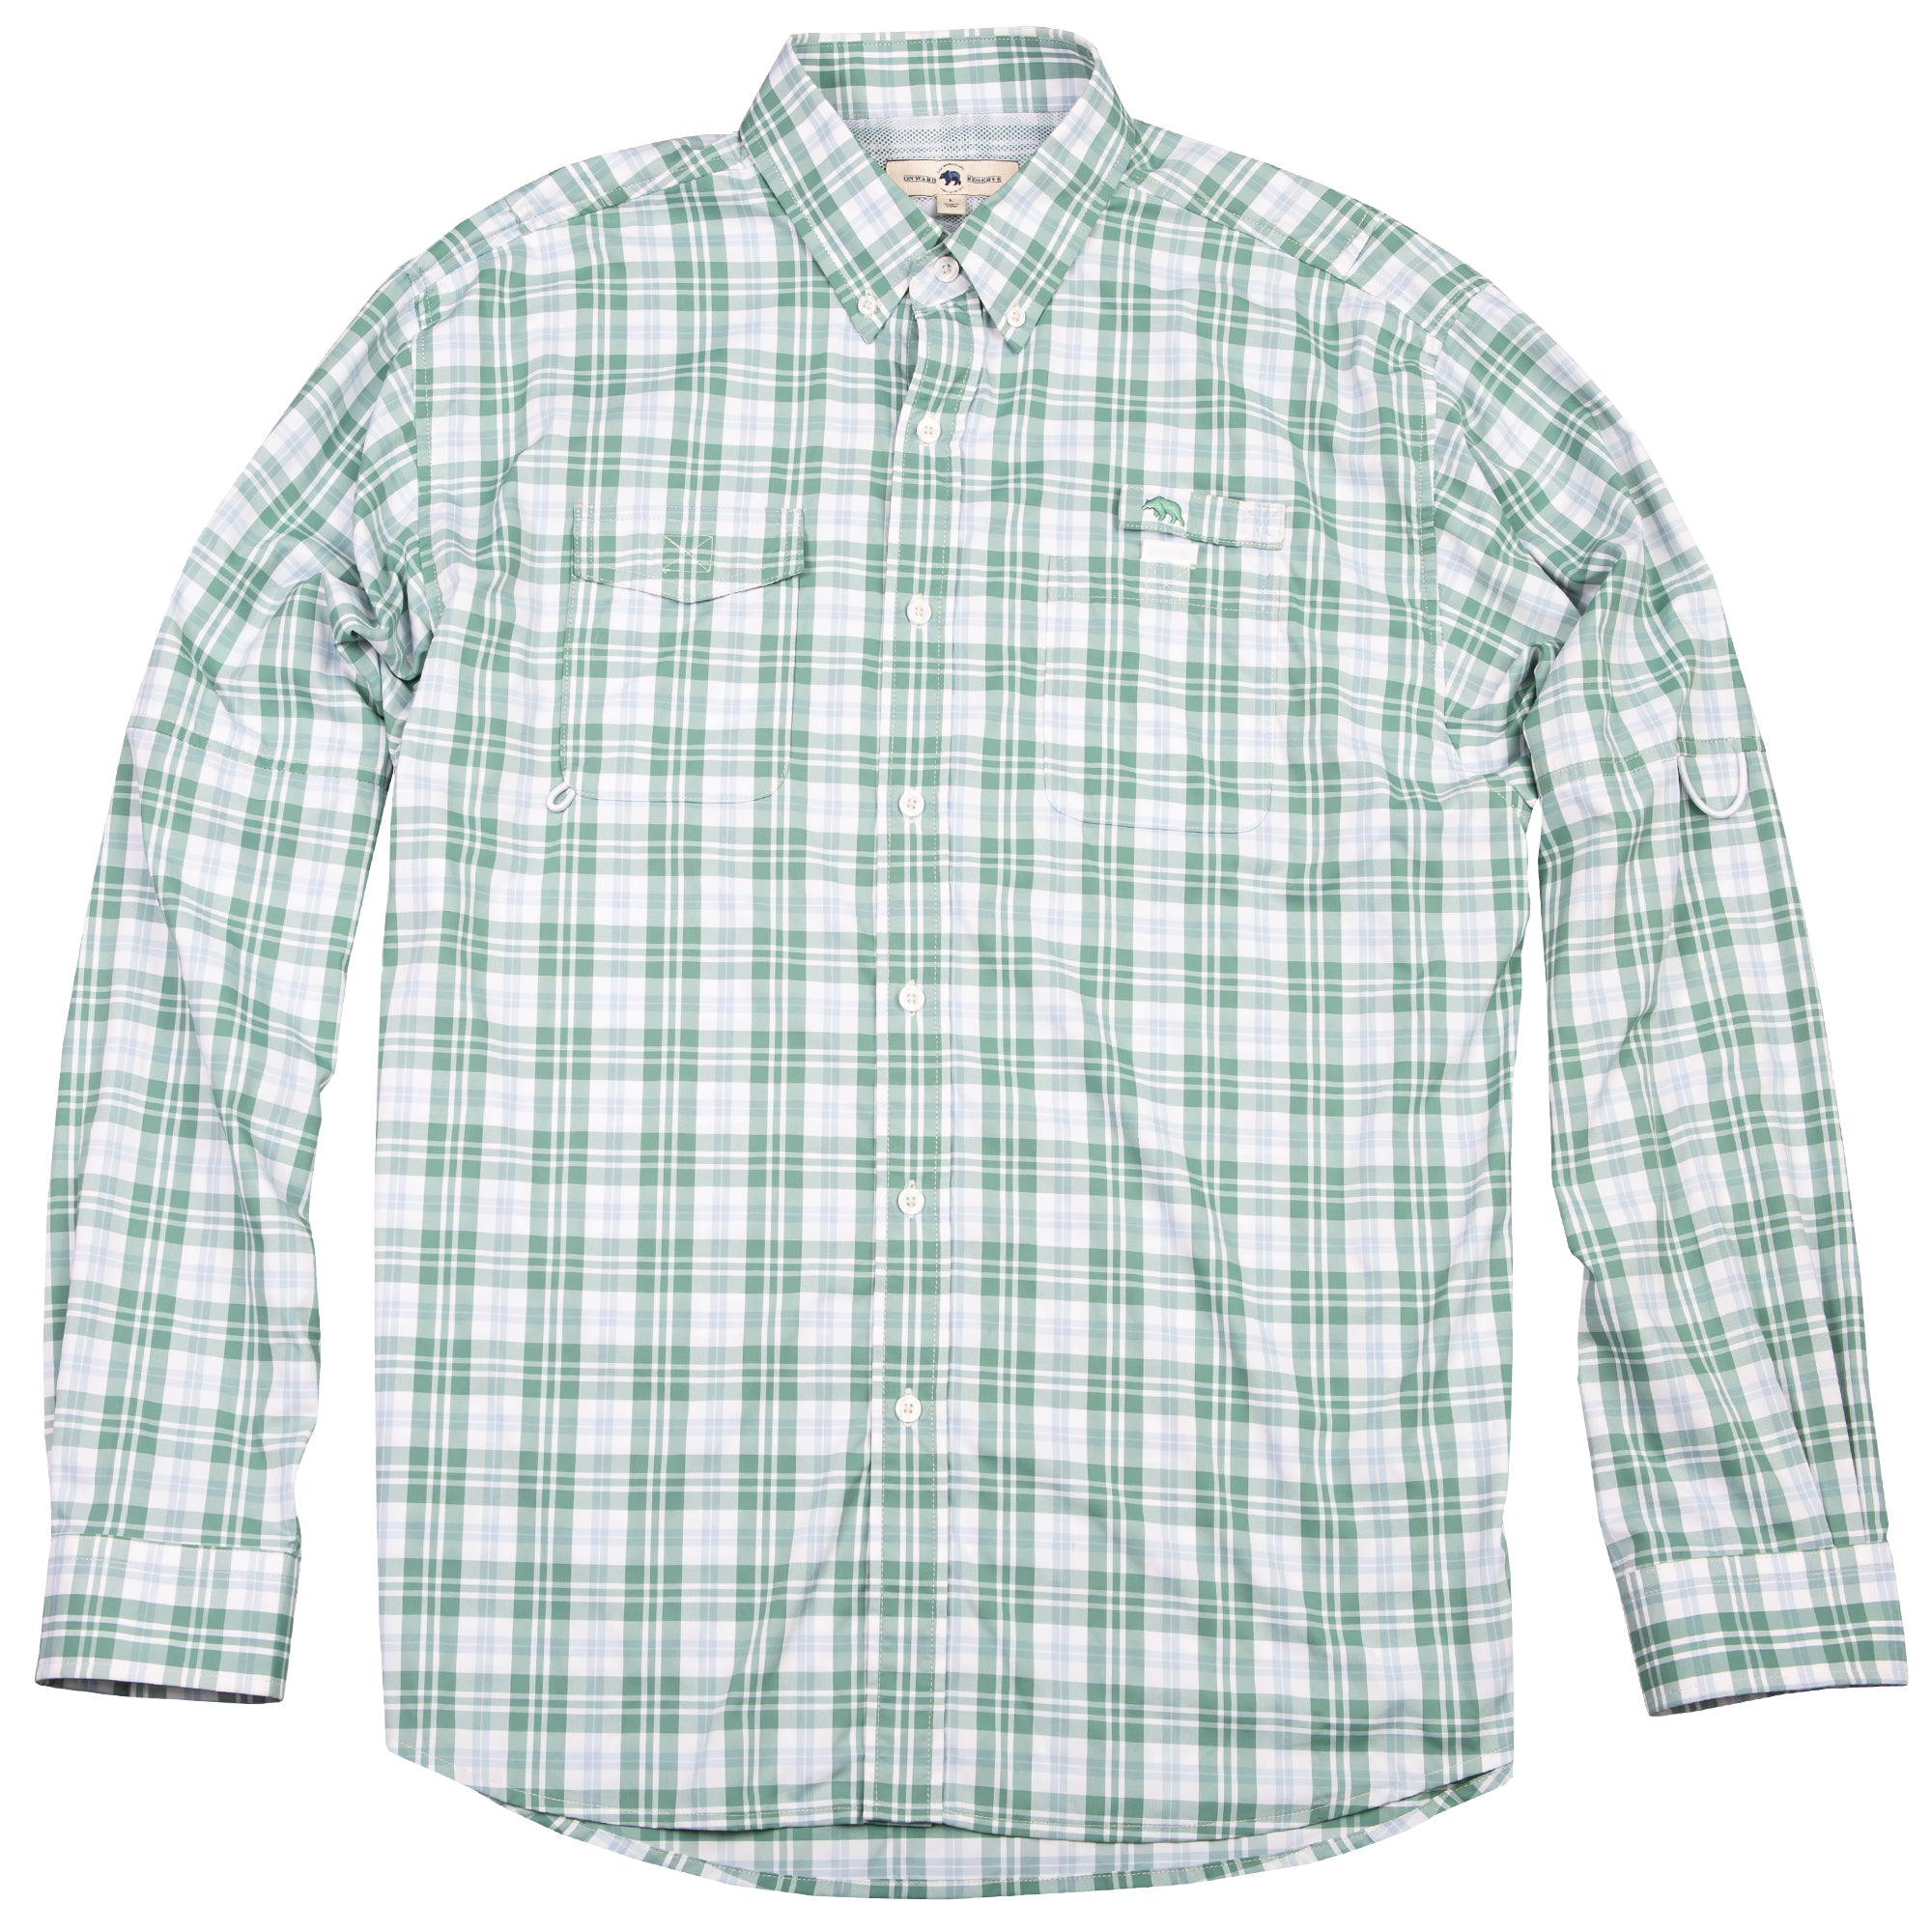 Performance Fishing Shirt - Vintage Green Plaid - OnwardReserve